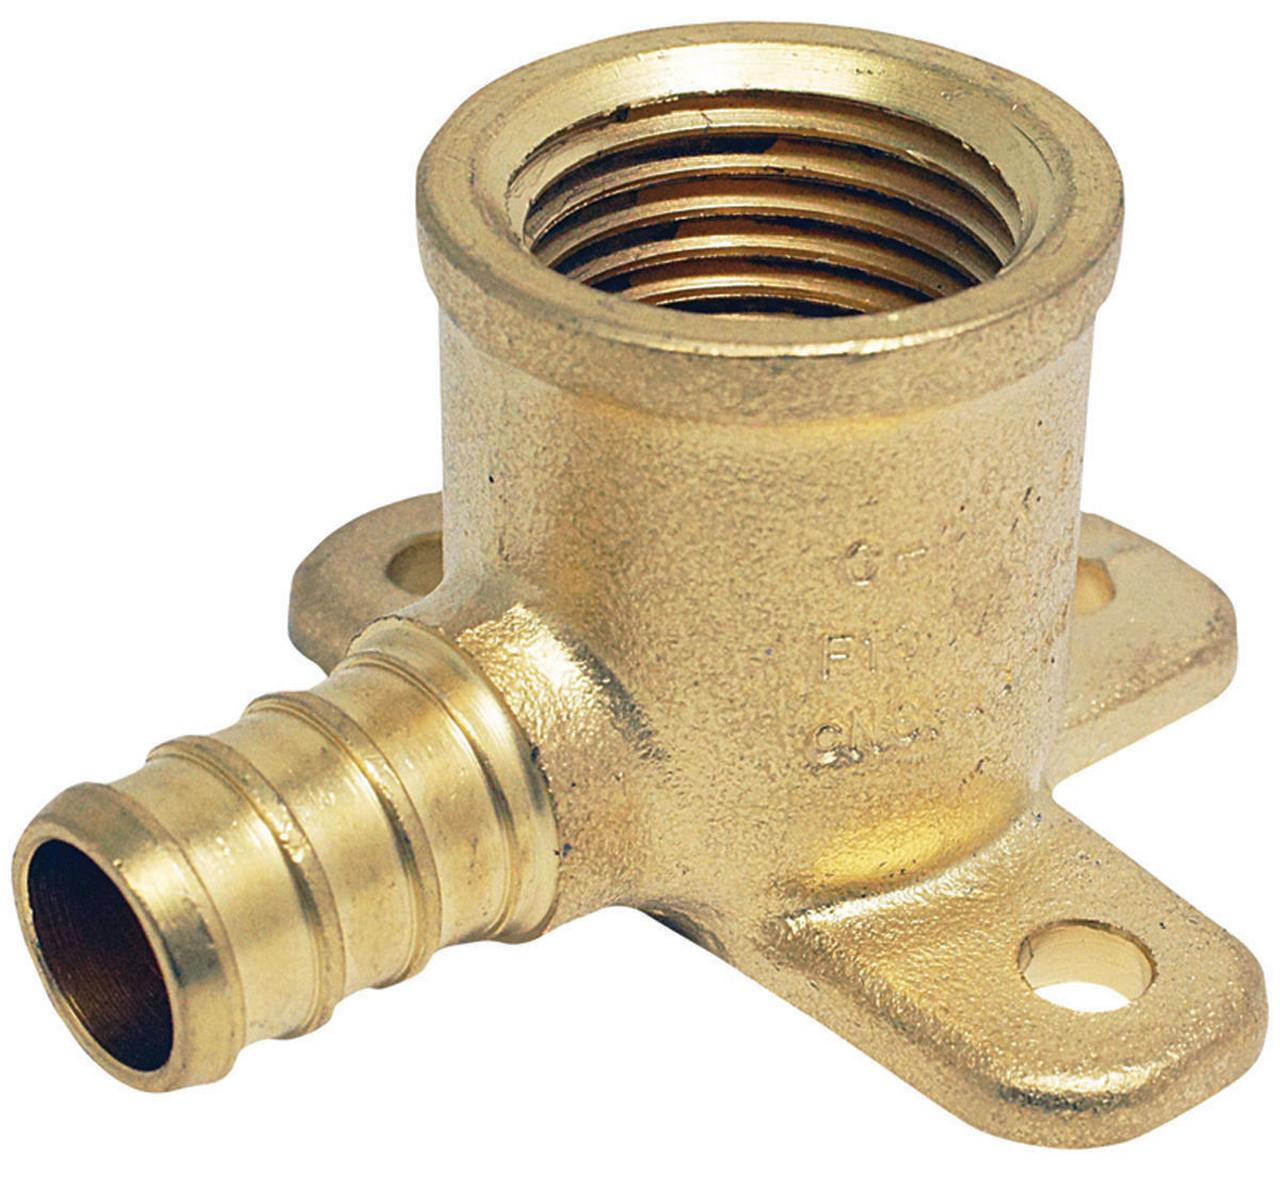 Conbraco APXDEE12 Drop Ear Pipe Elbow, 1/2 in, FPT, Brass/Pex